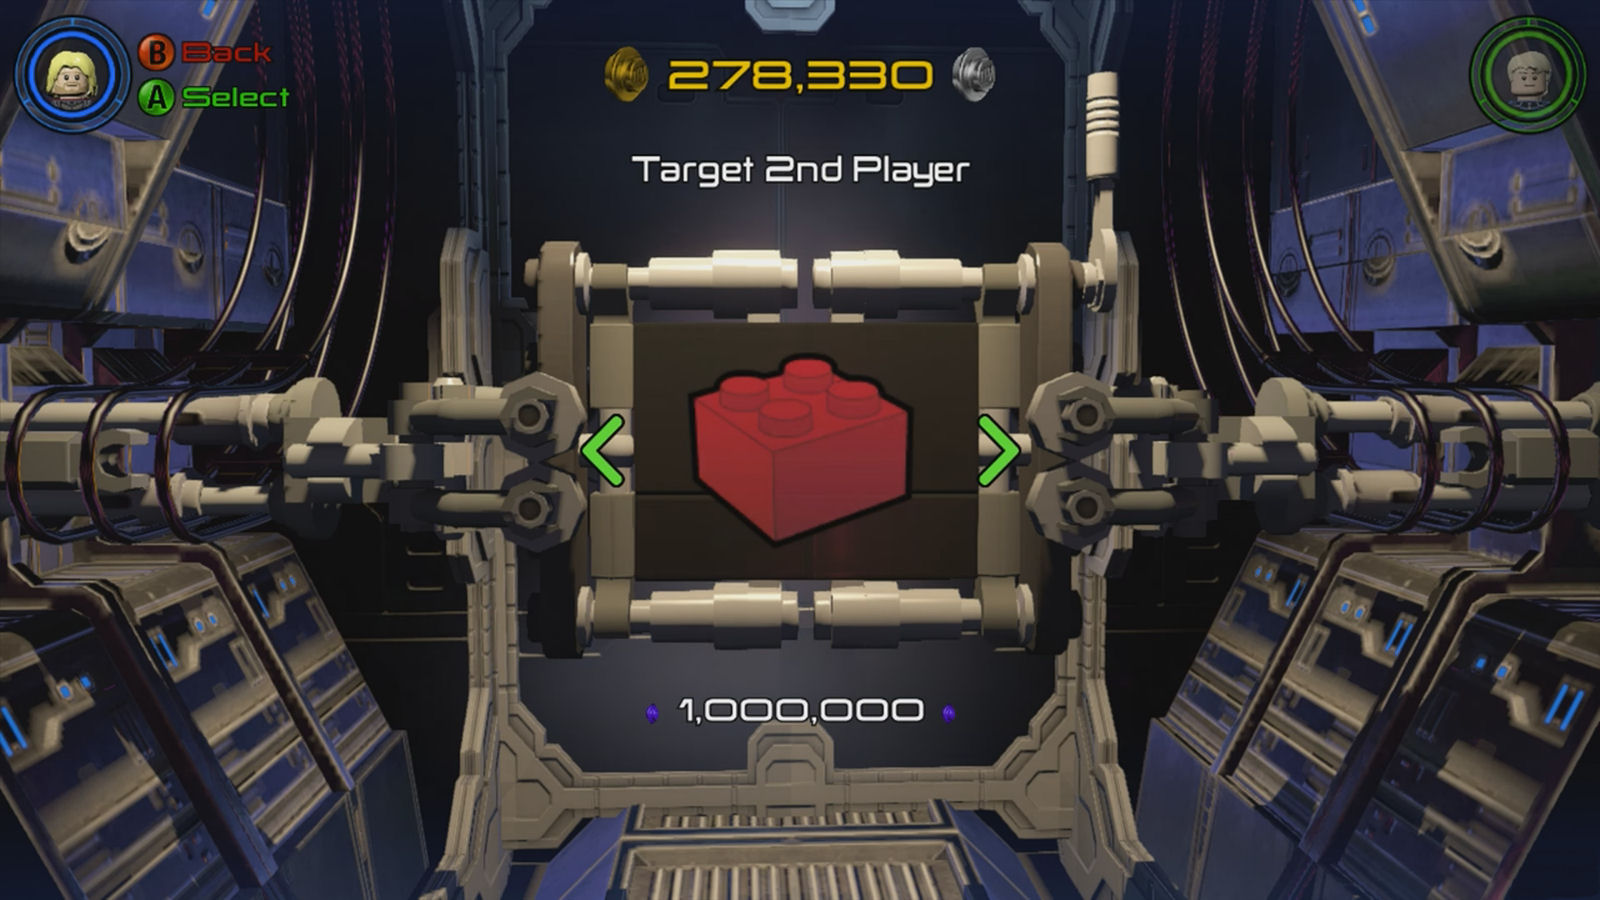 Lego Marvel's Avengers Red Brick 17: Target 2nd Player Location